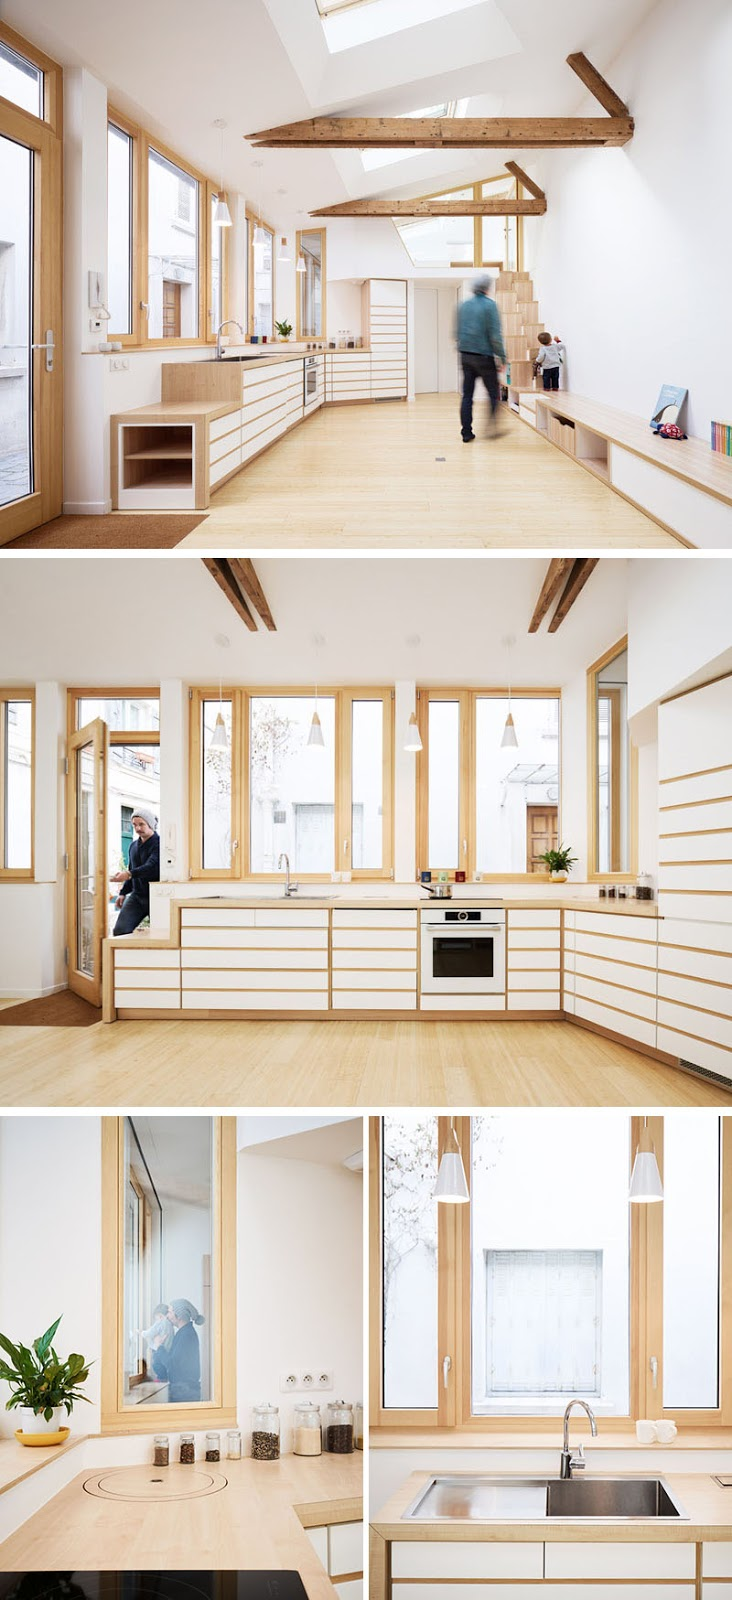 modern-kitchen-design-white-wood-120318-1251-06 This 1970s Studio Was Transformed Into A Bright And Open Small Home (Before & After) Interior